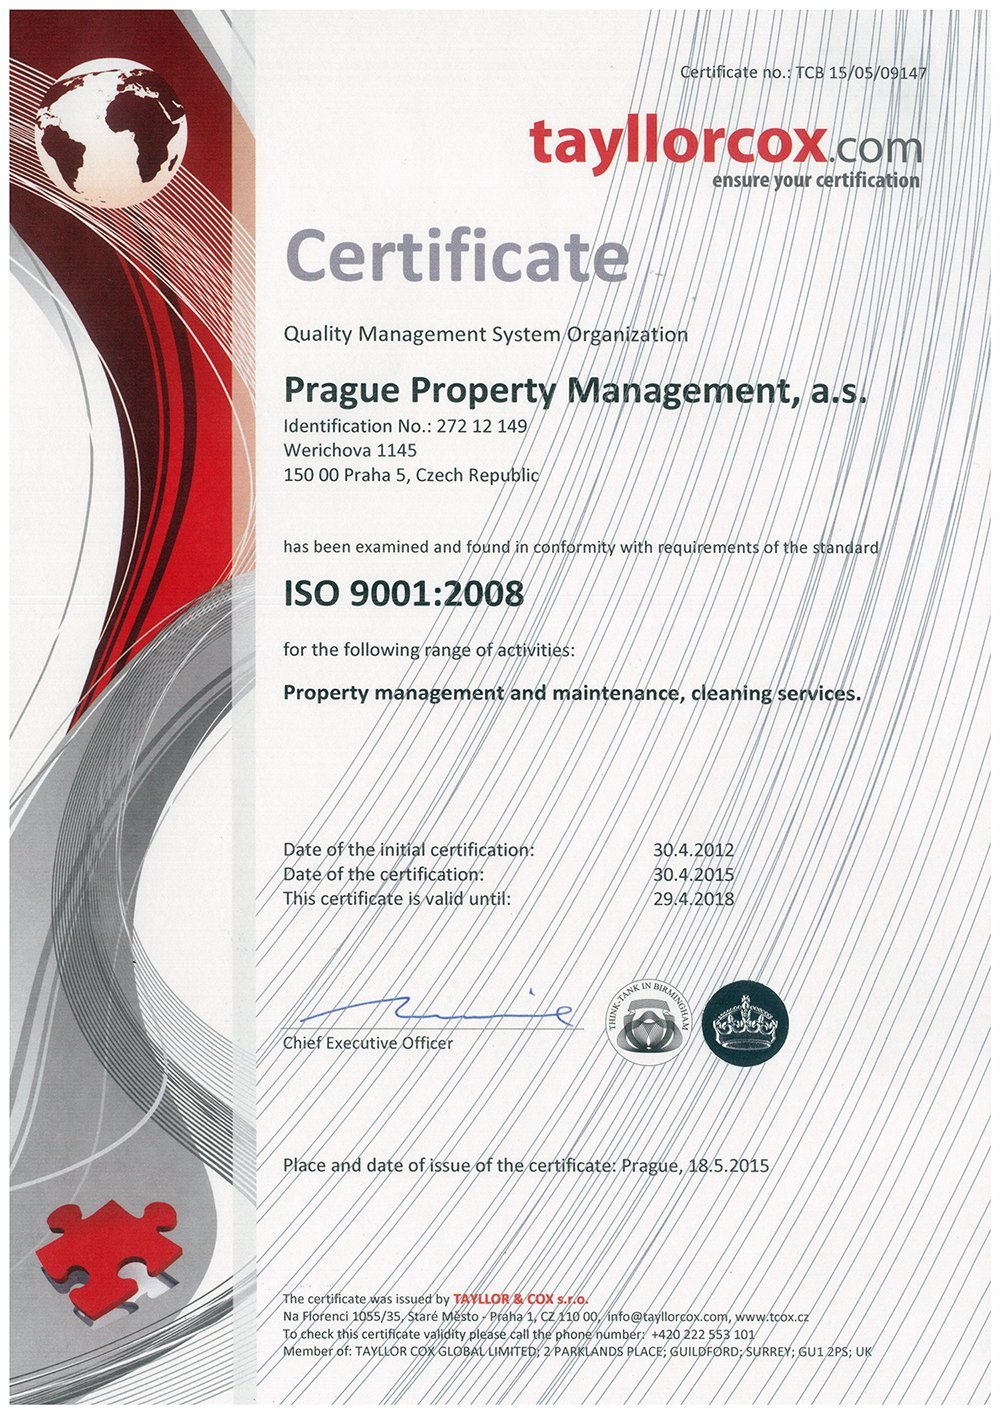 Certification For Property Management Ppm As